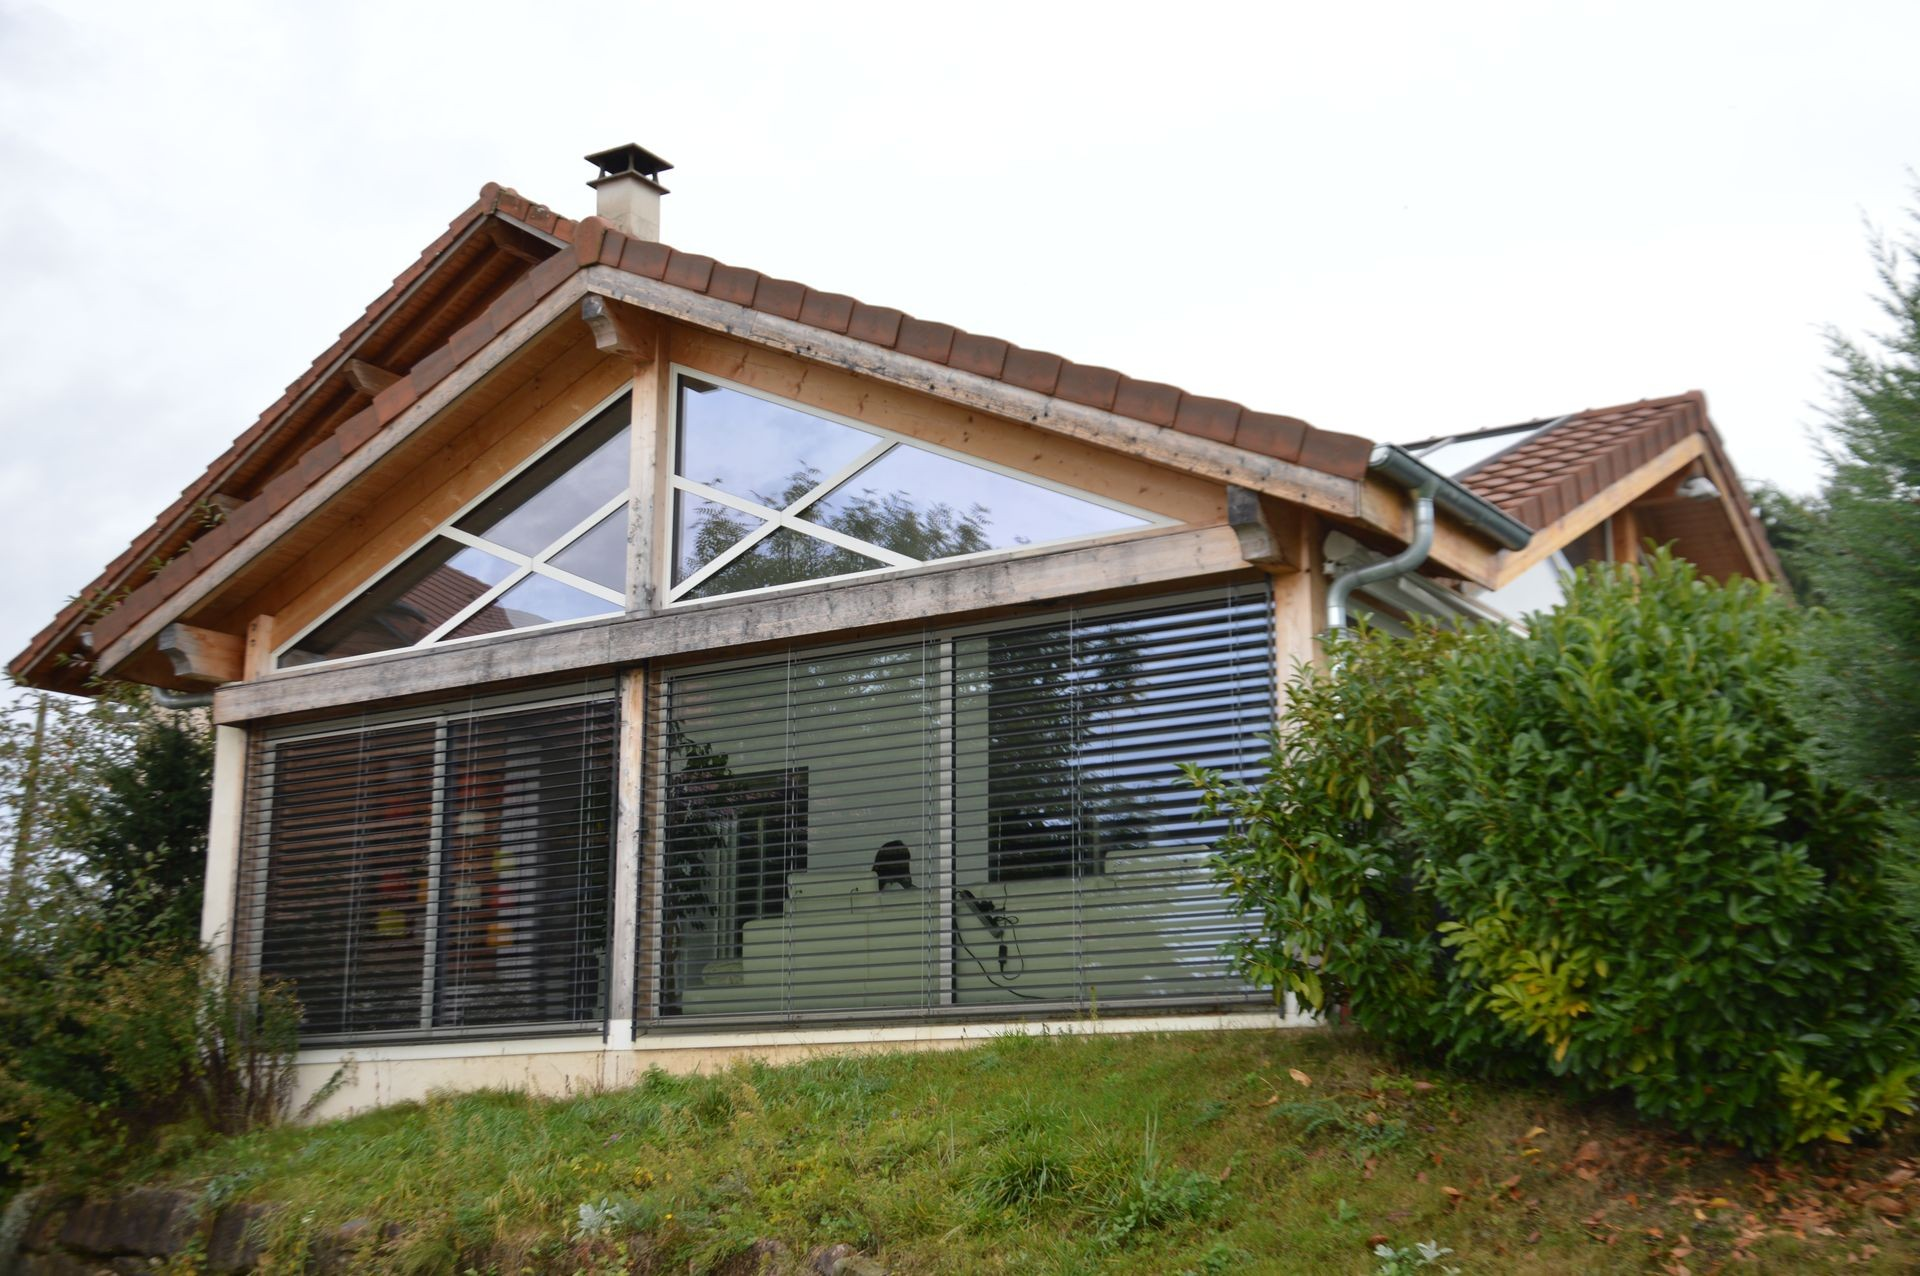 Extension de maison en ossature bois et aluminium avec spa for Extension maison 74